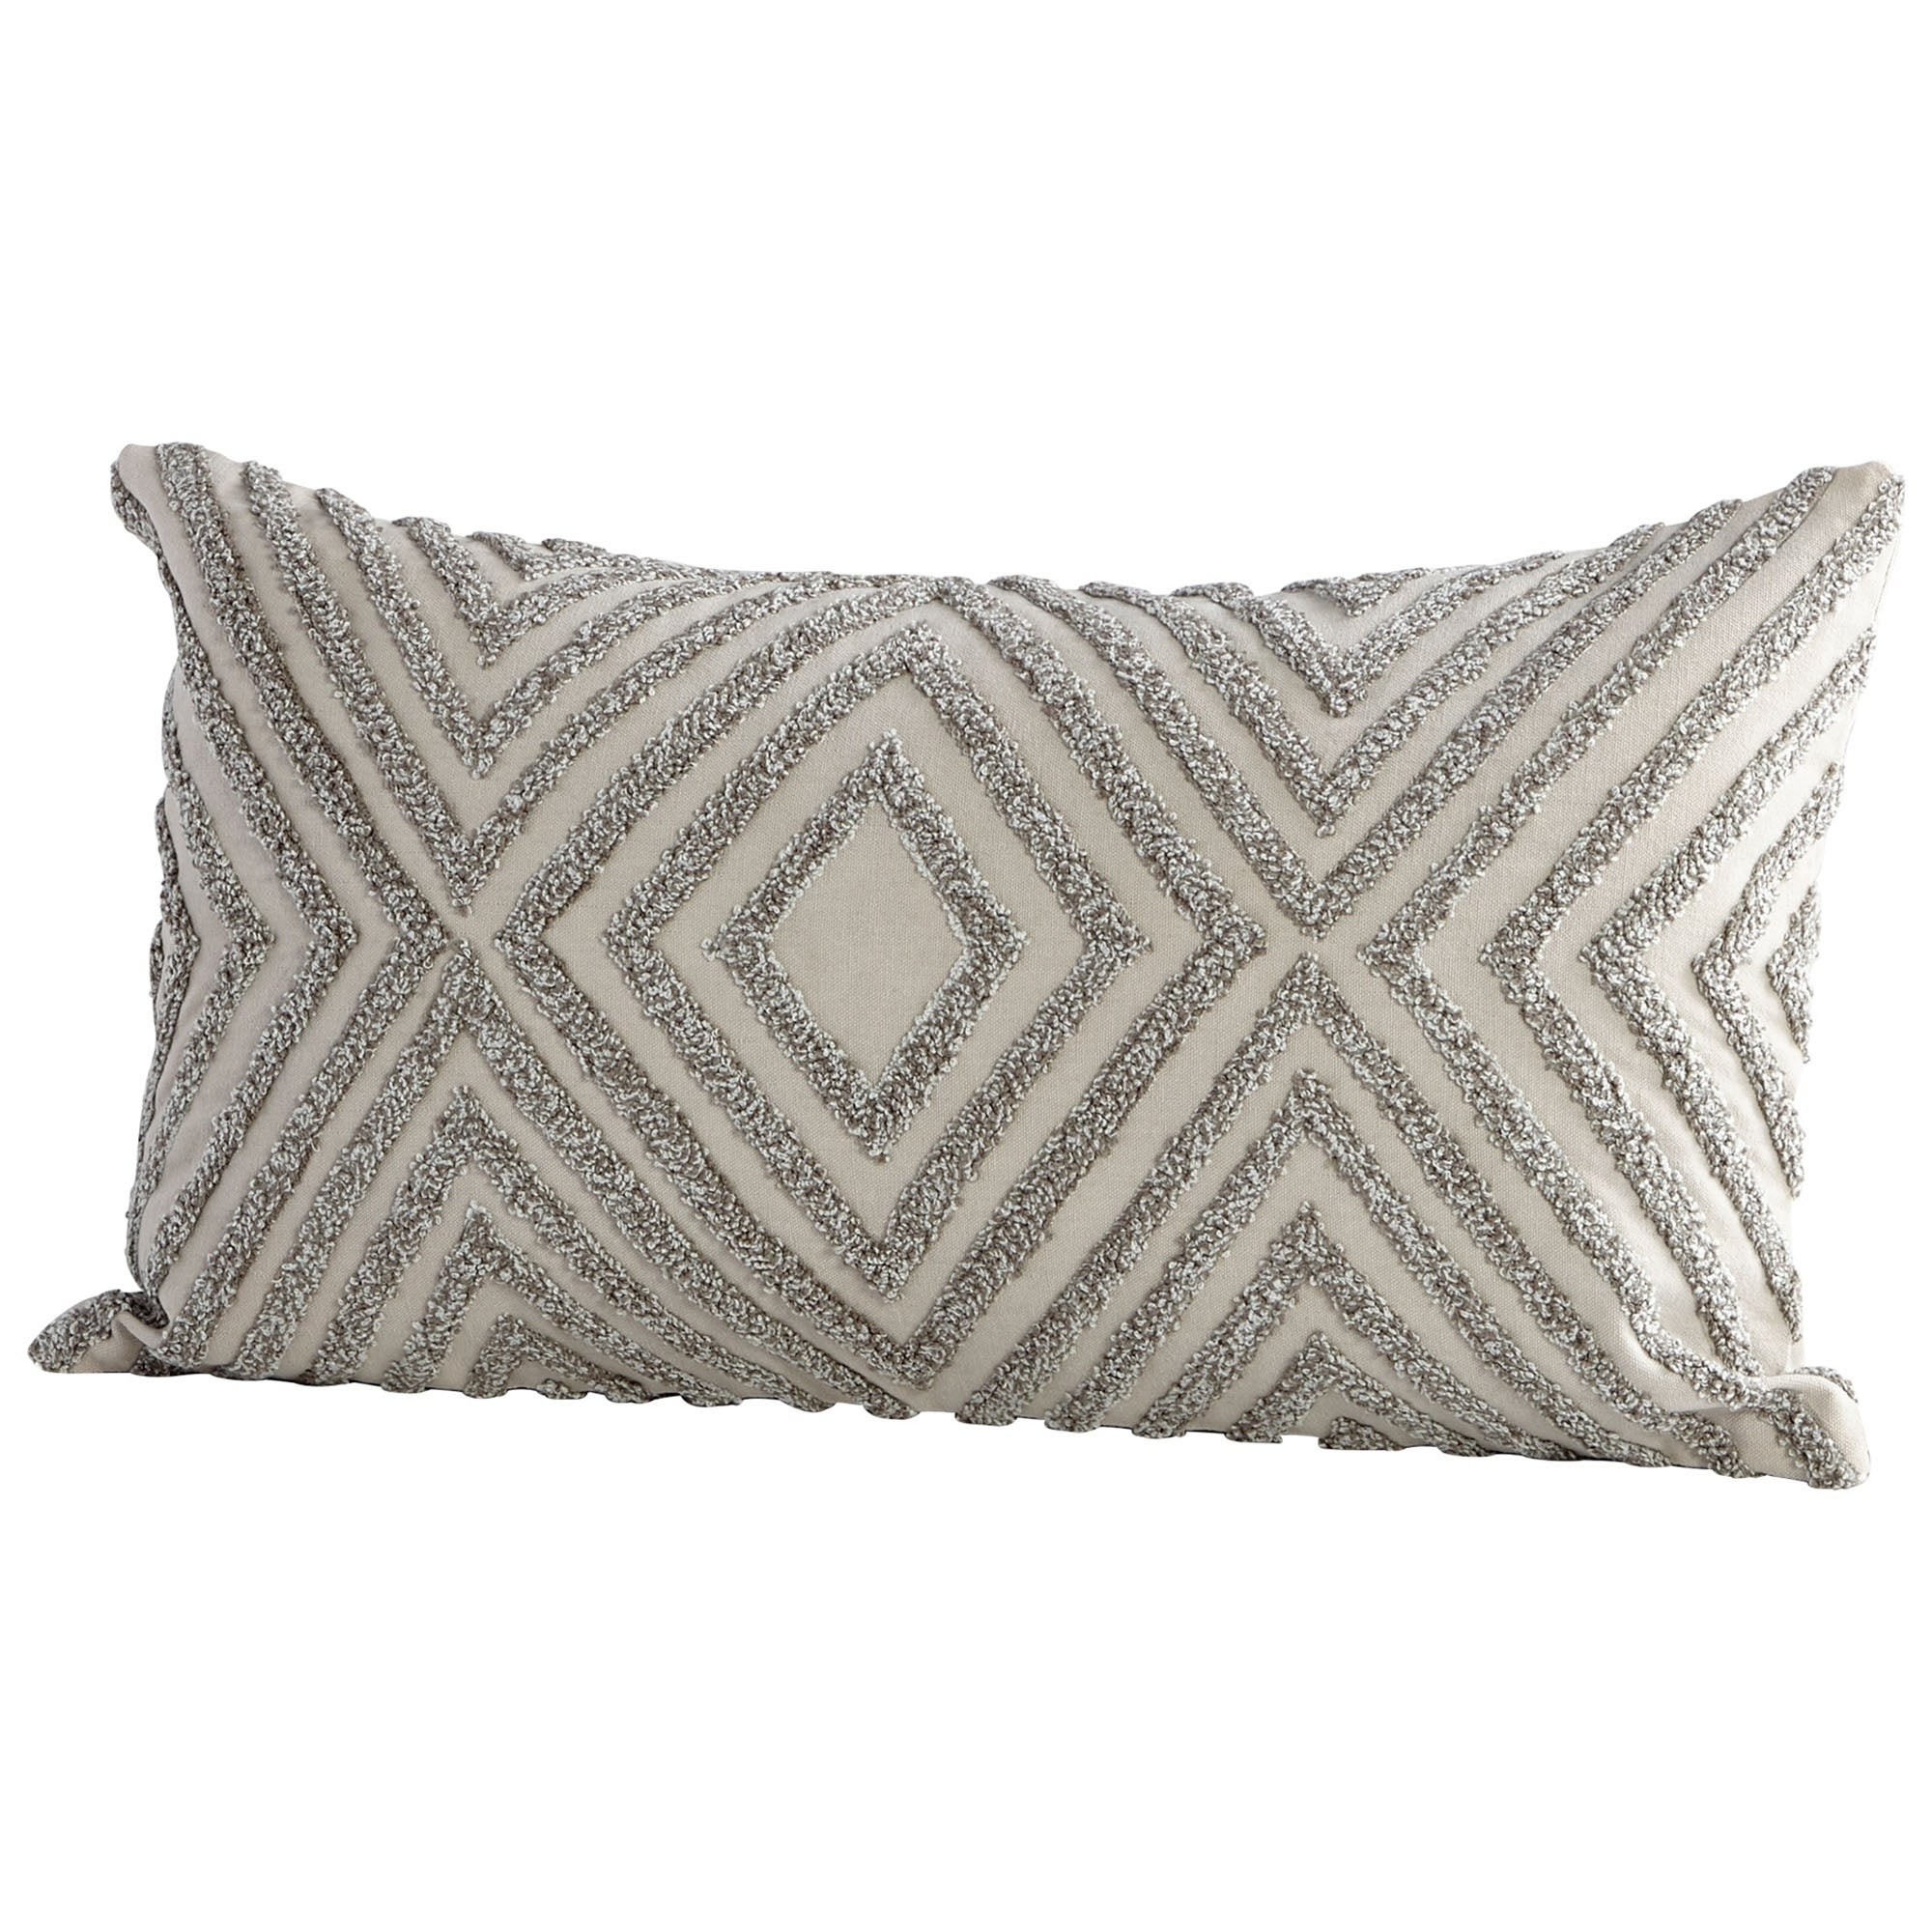 Shop diamond hedge beige handmade cotton accent pillow free shipping today overstock com 23499888